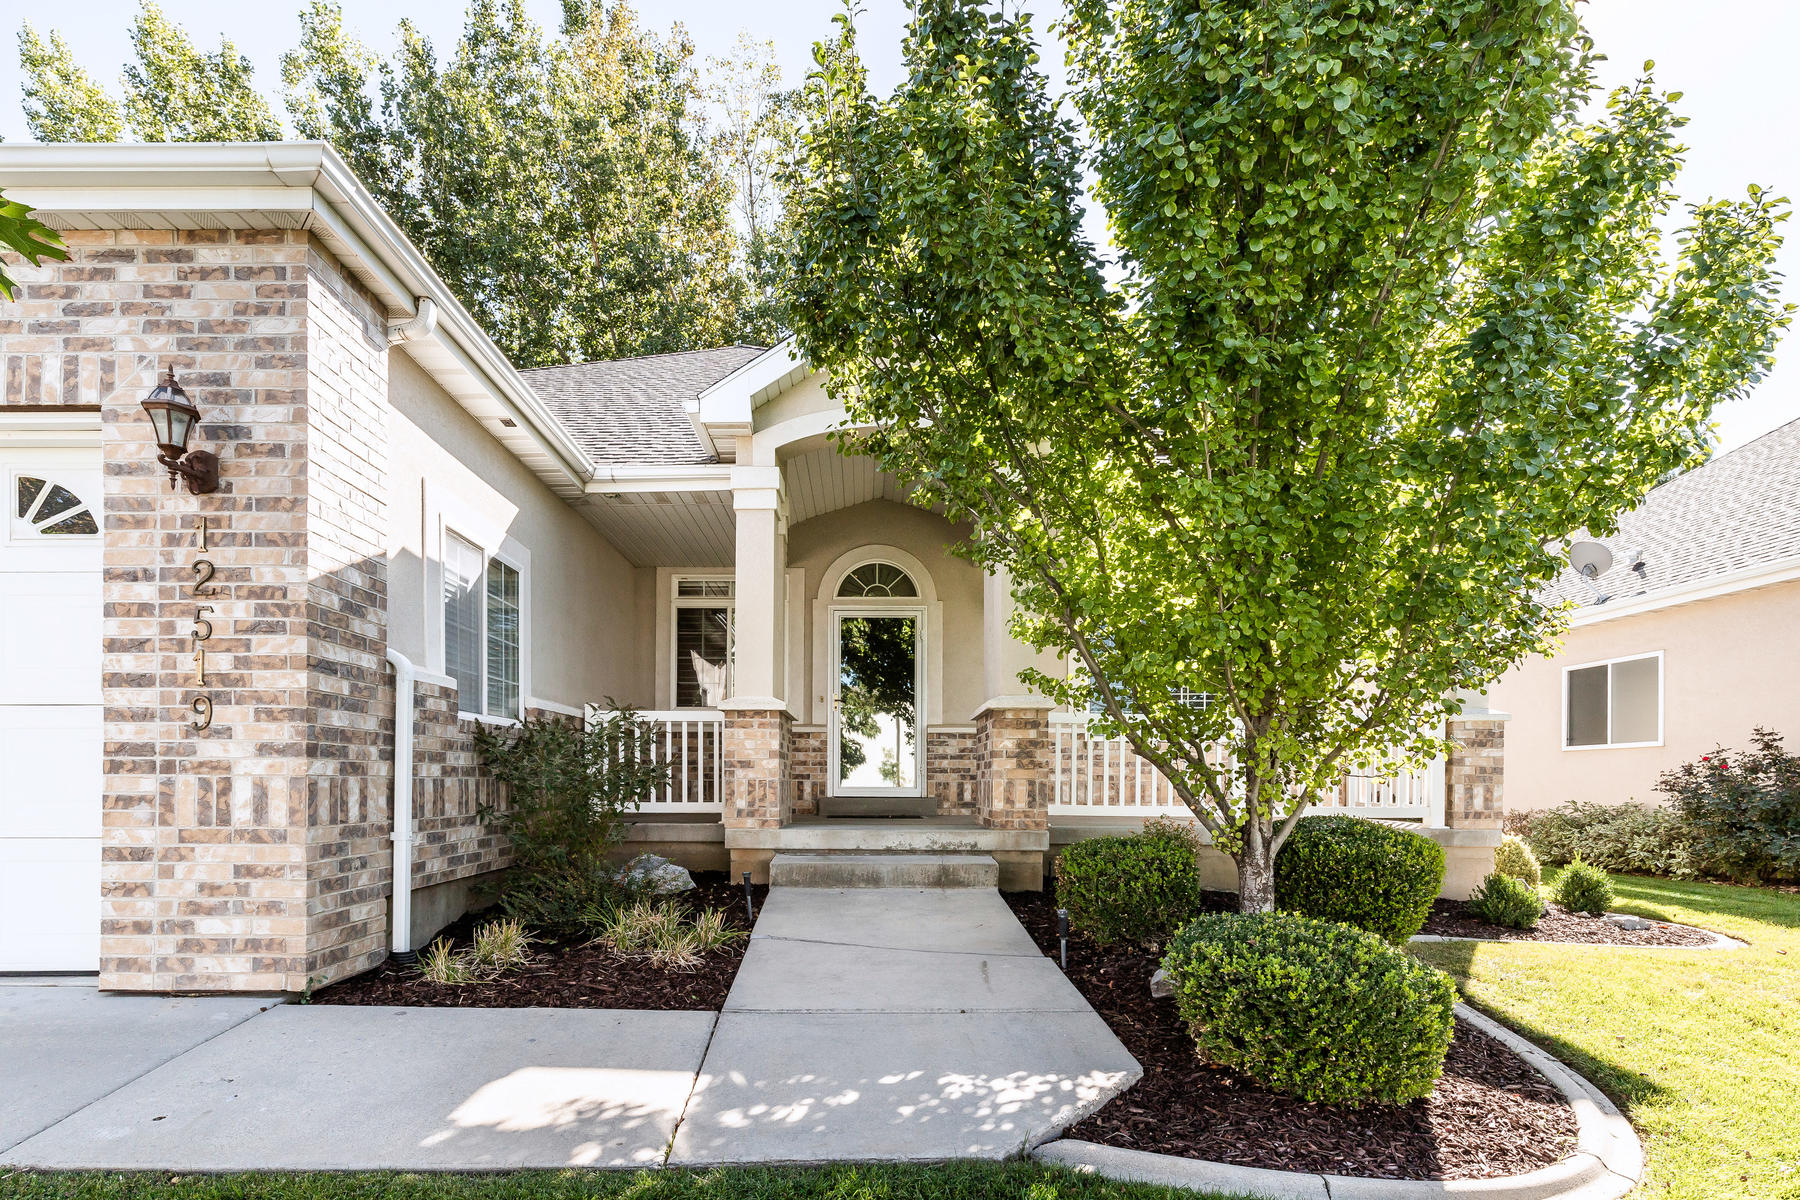 Single Family Homes for Sale at Low Maintenance Living 12519 Forge Way, Draper, Utah 84020 United States